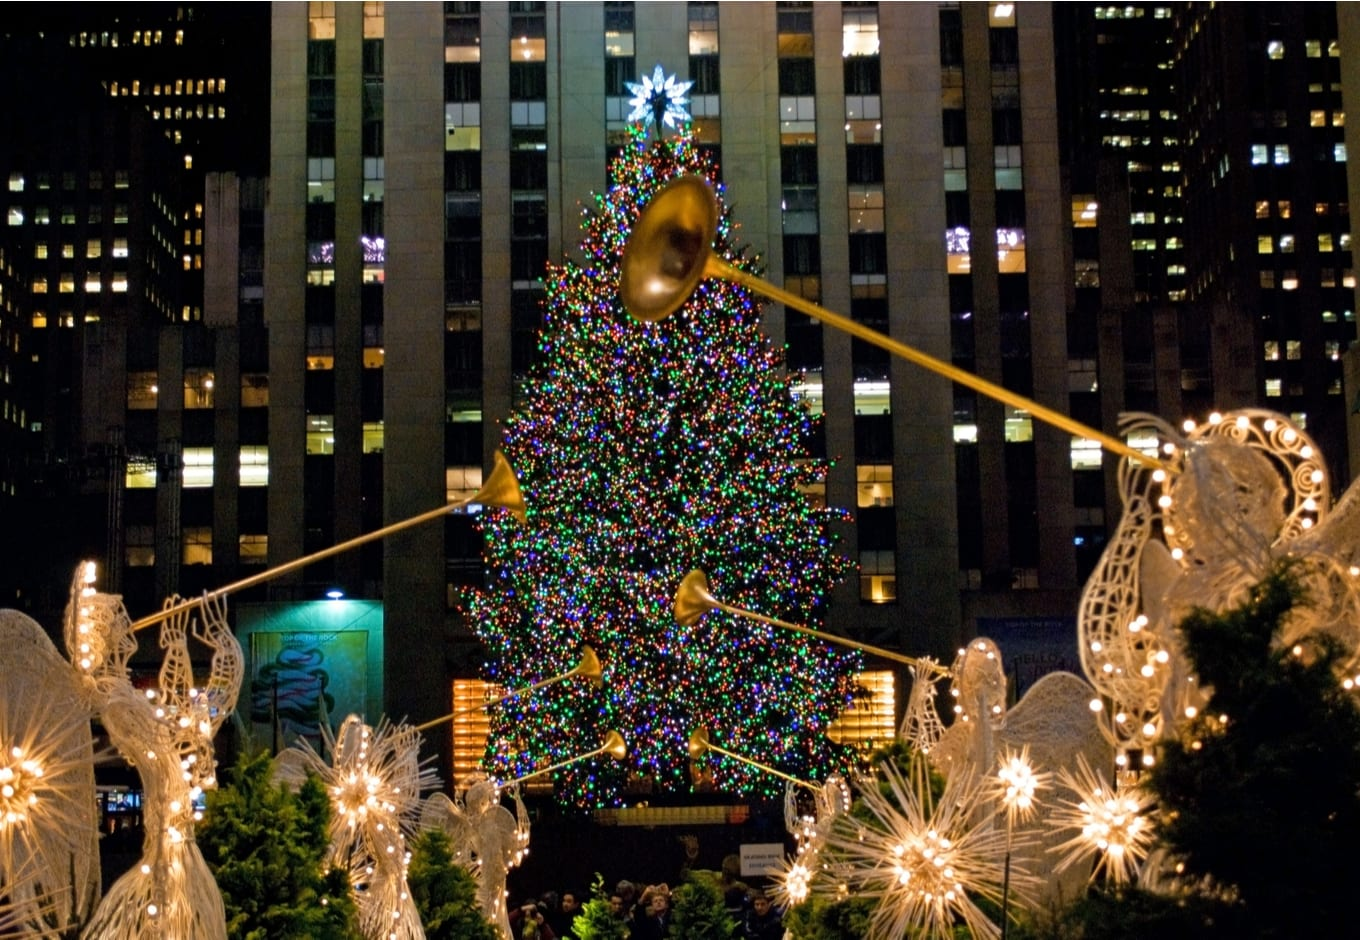 The decorated Christmas tree at the Rockefeller Center, in New York.